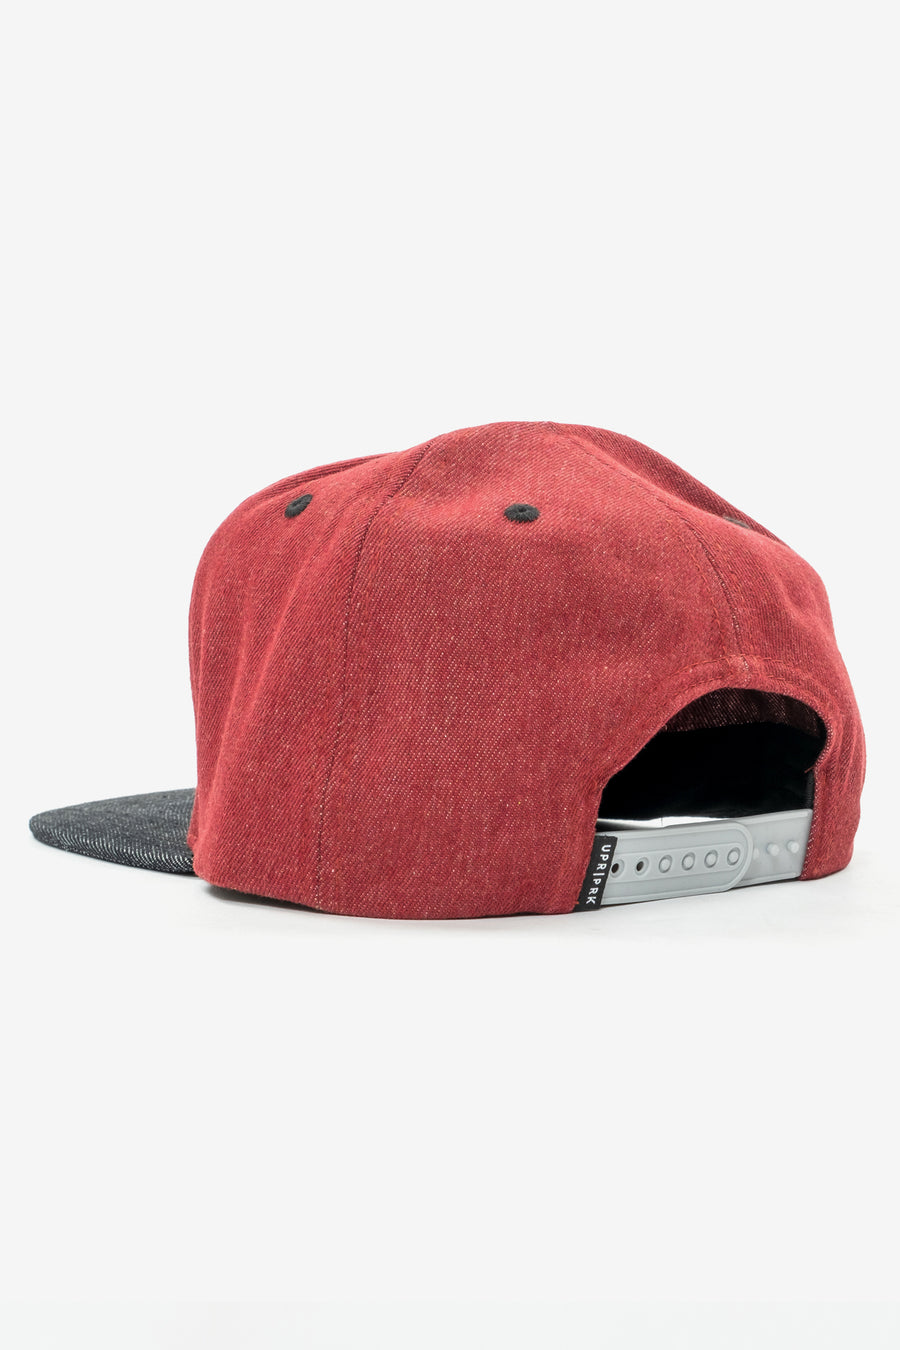 Denim Cali Badge Mid-Pro Hat - Maroon